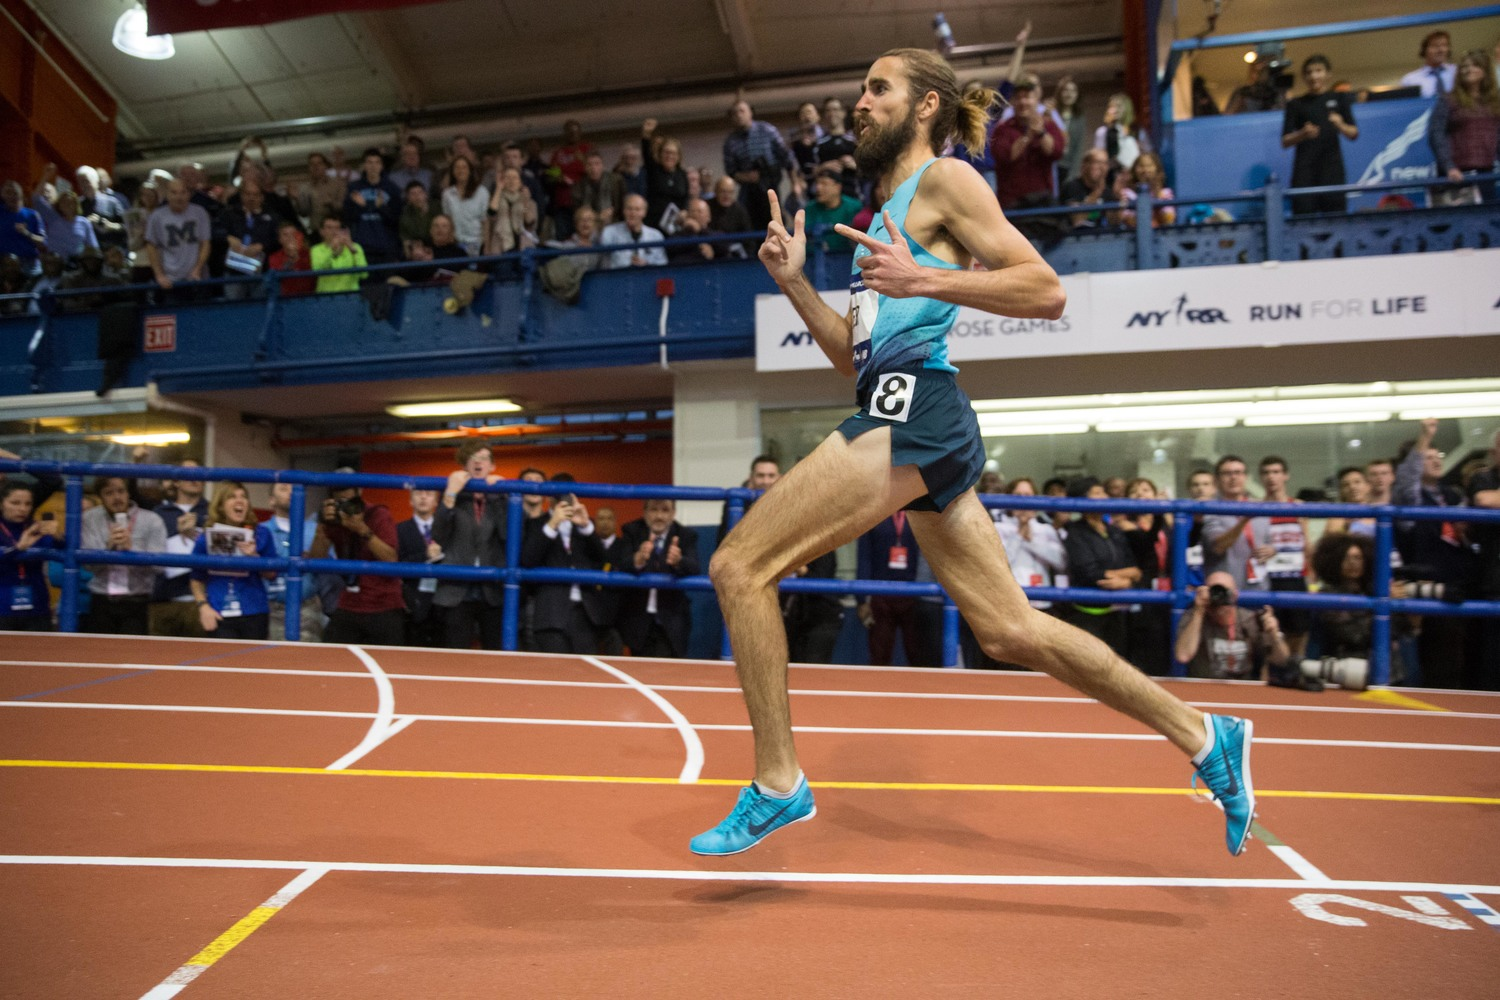 Will Leer celebrates after claiming the NYRR Wanamaker Mile win at the NYRR Millrose Games. Photo: Ross Dettman for ArmoryTrack